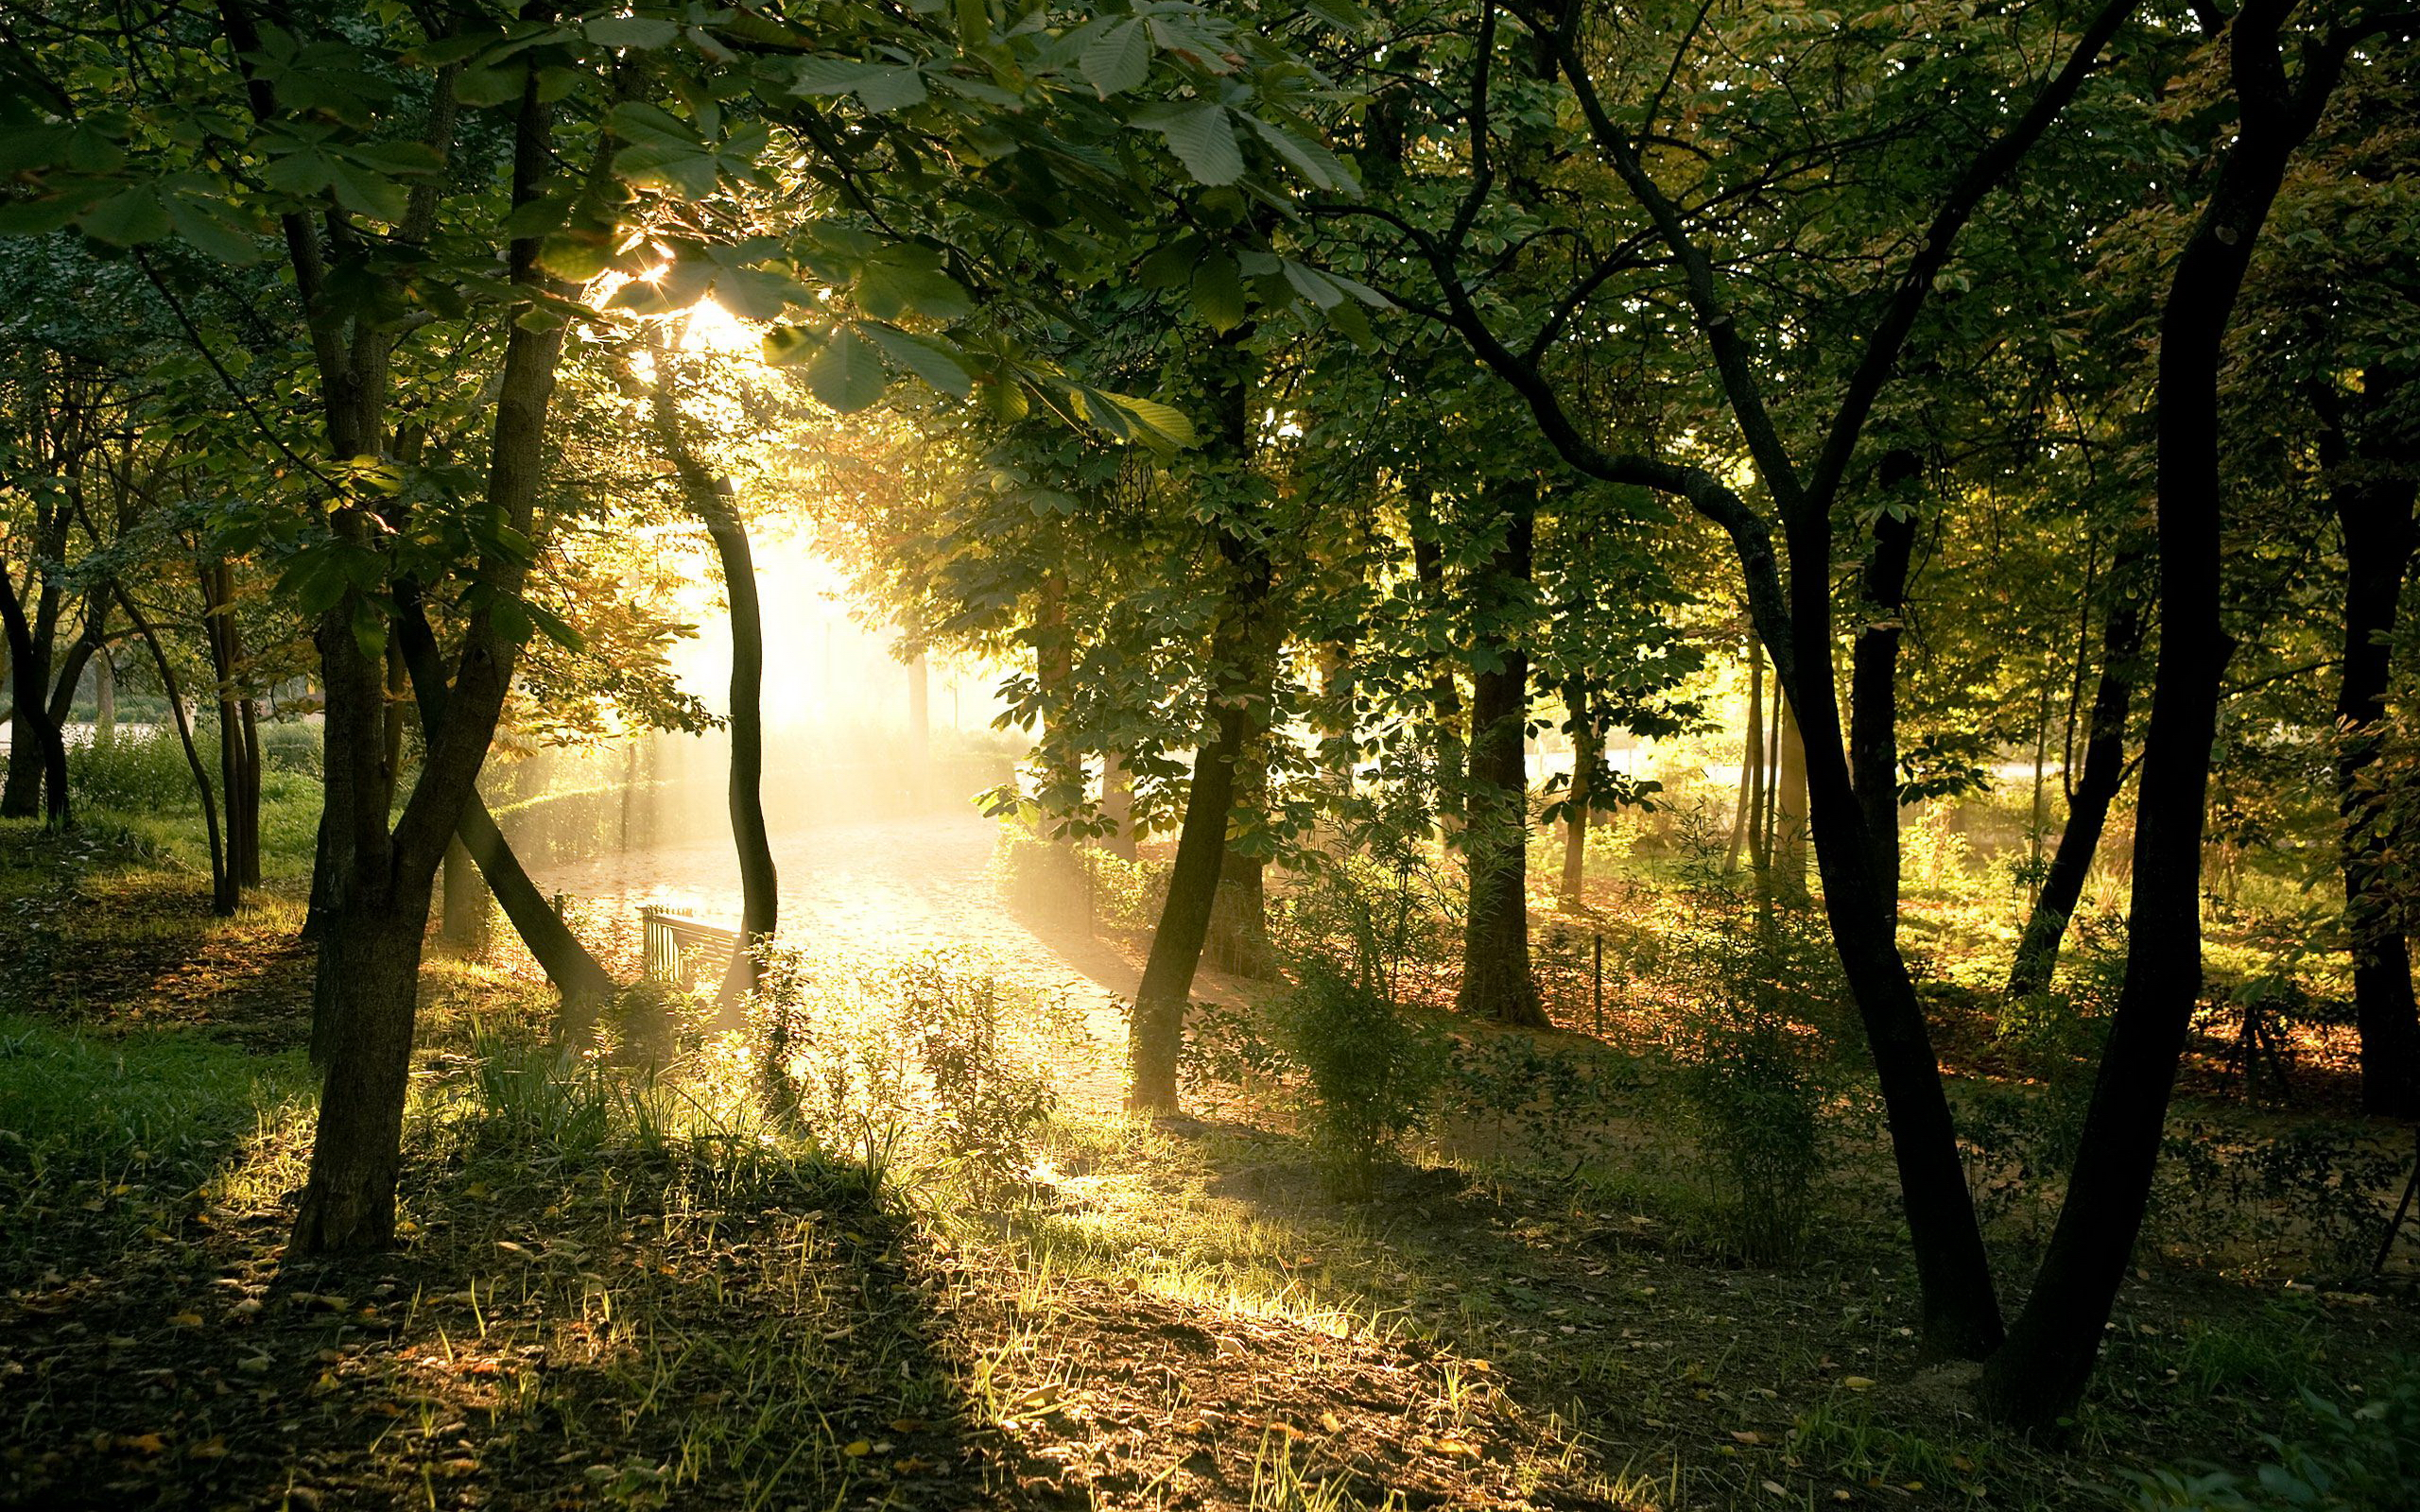 summer forest images picture wallpaper download images